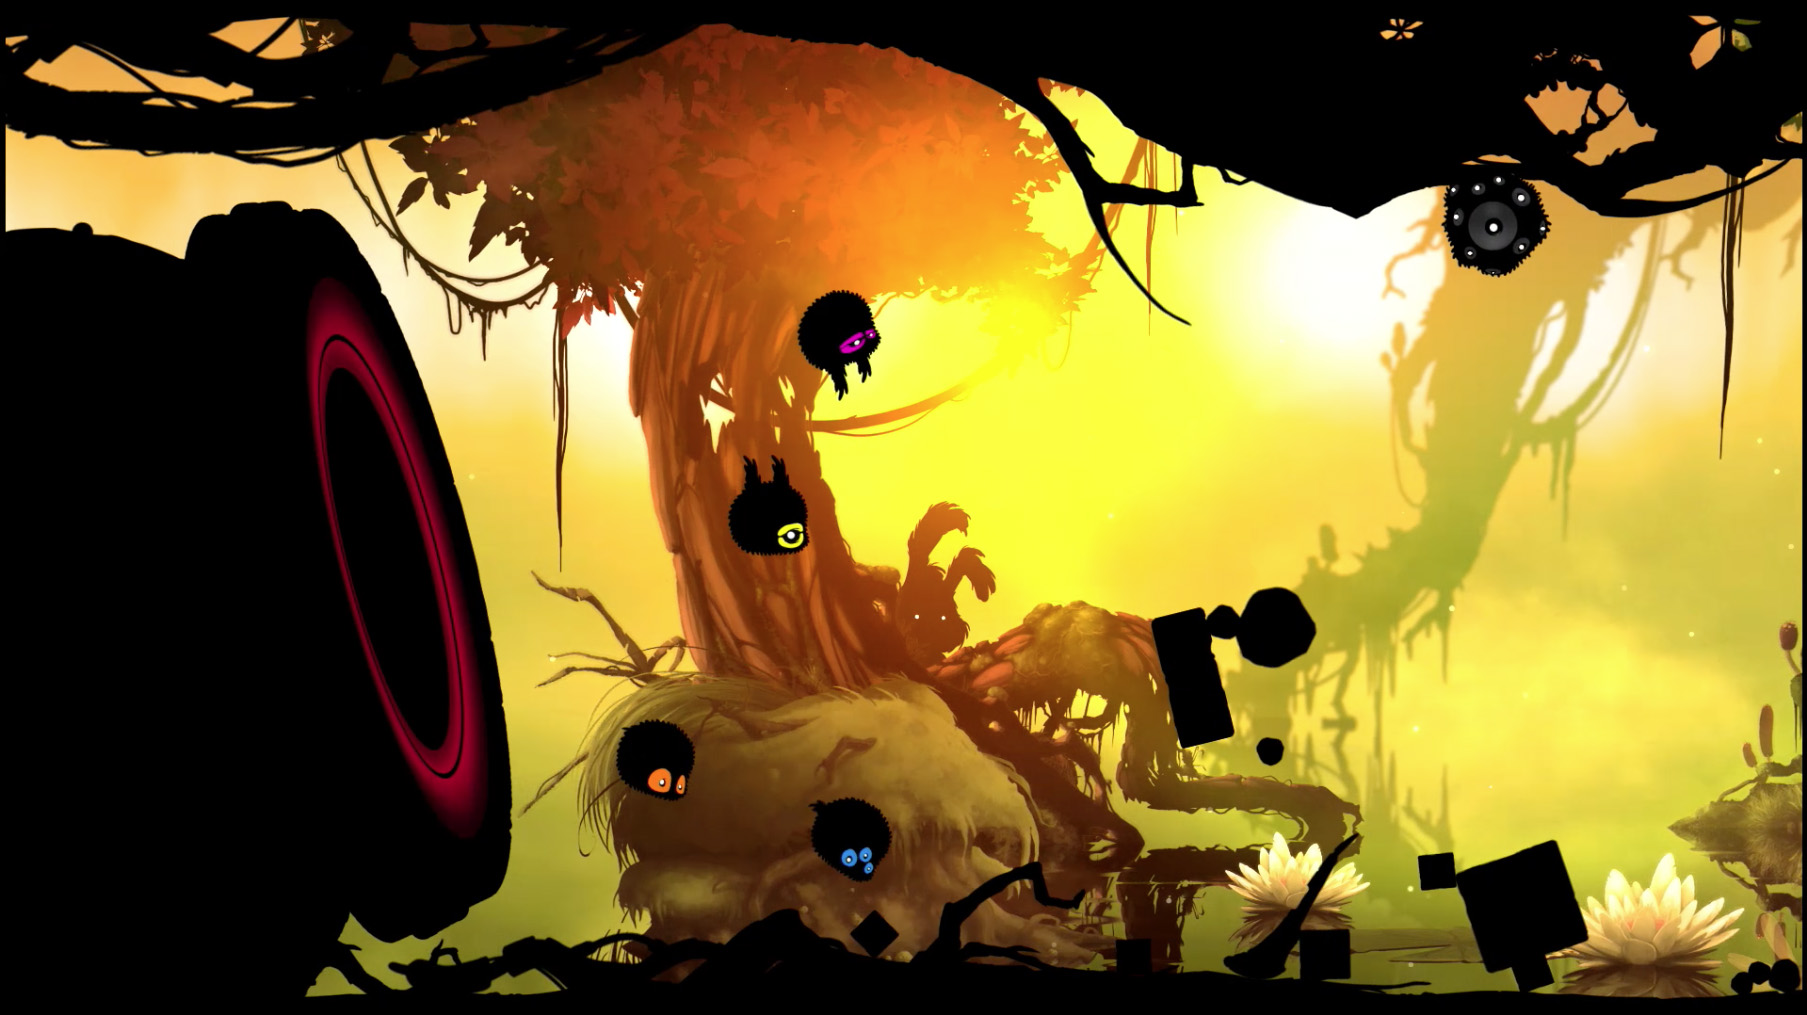 Badland co-op multiplayer update lets you face the chaotic gauntlets with up to 4 friends